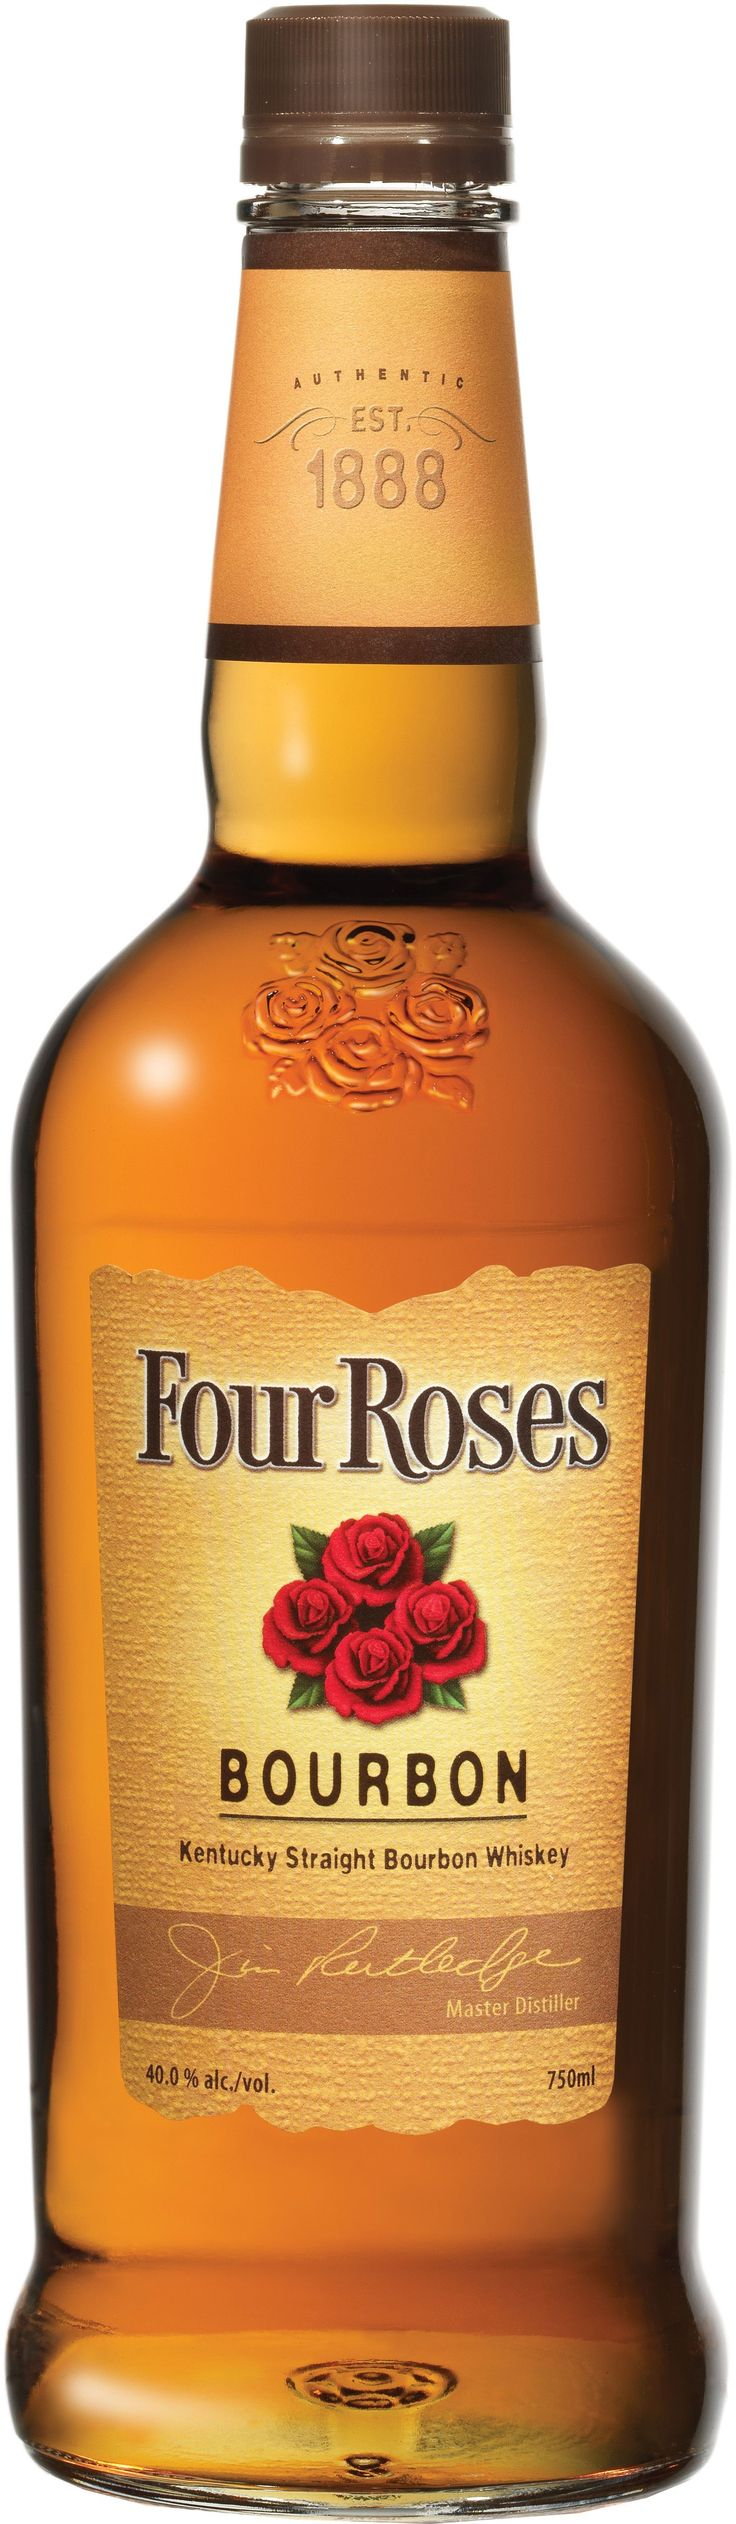 Four Roses Yellow Label Kentucky Straight Bourbon Whiskey   @Caskers